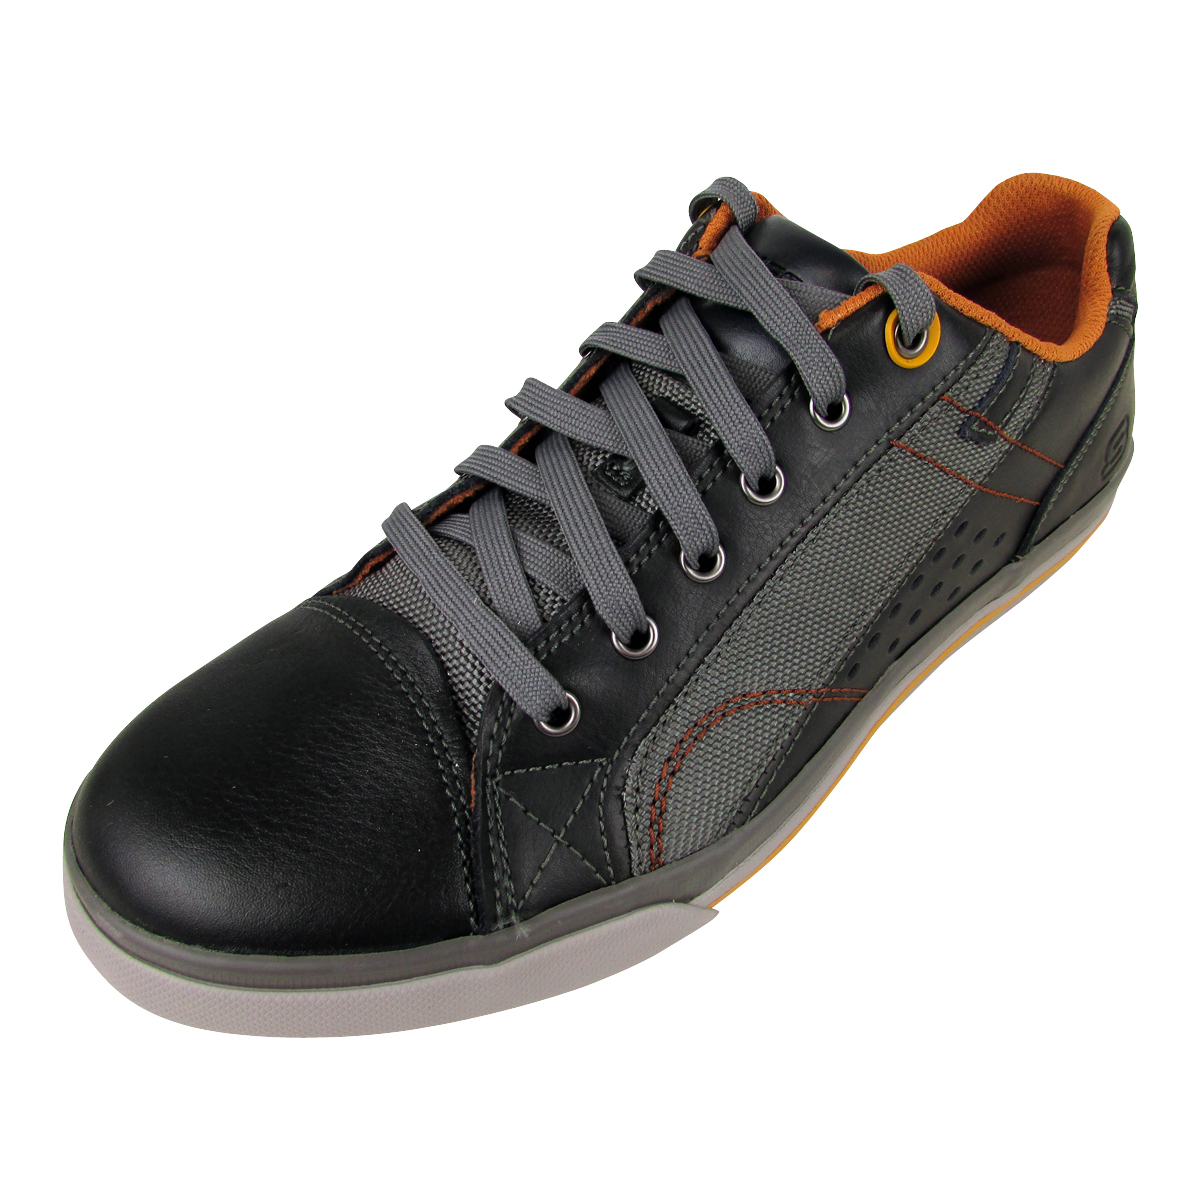 35be14c6606e Mens Skechers Leather Sneakers Trainers Memory Foam Trainer Lace Up Shoes  New